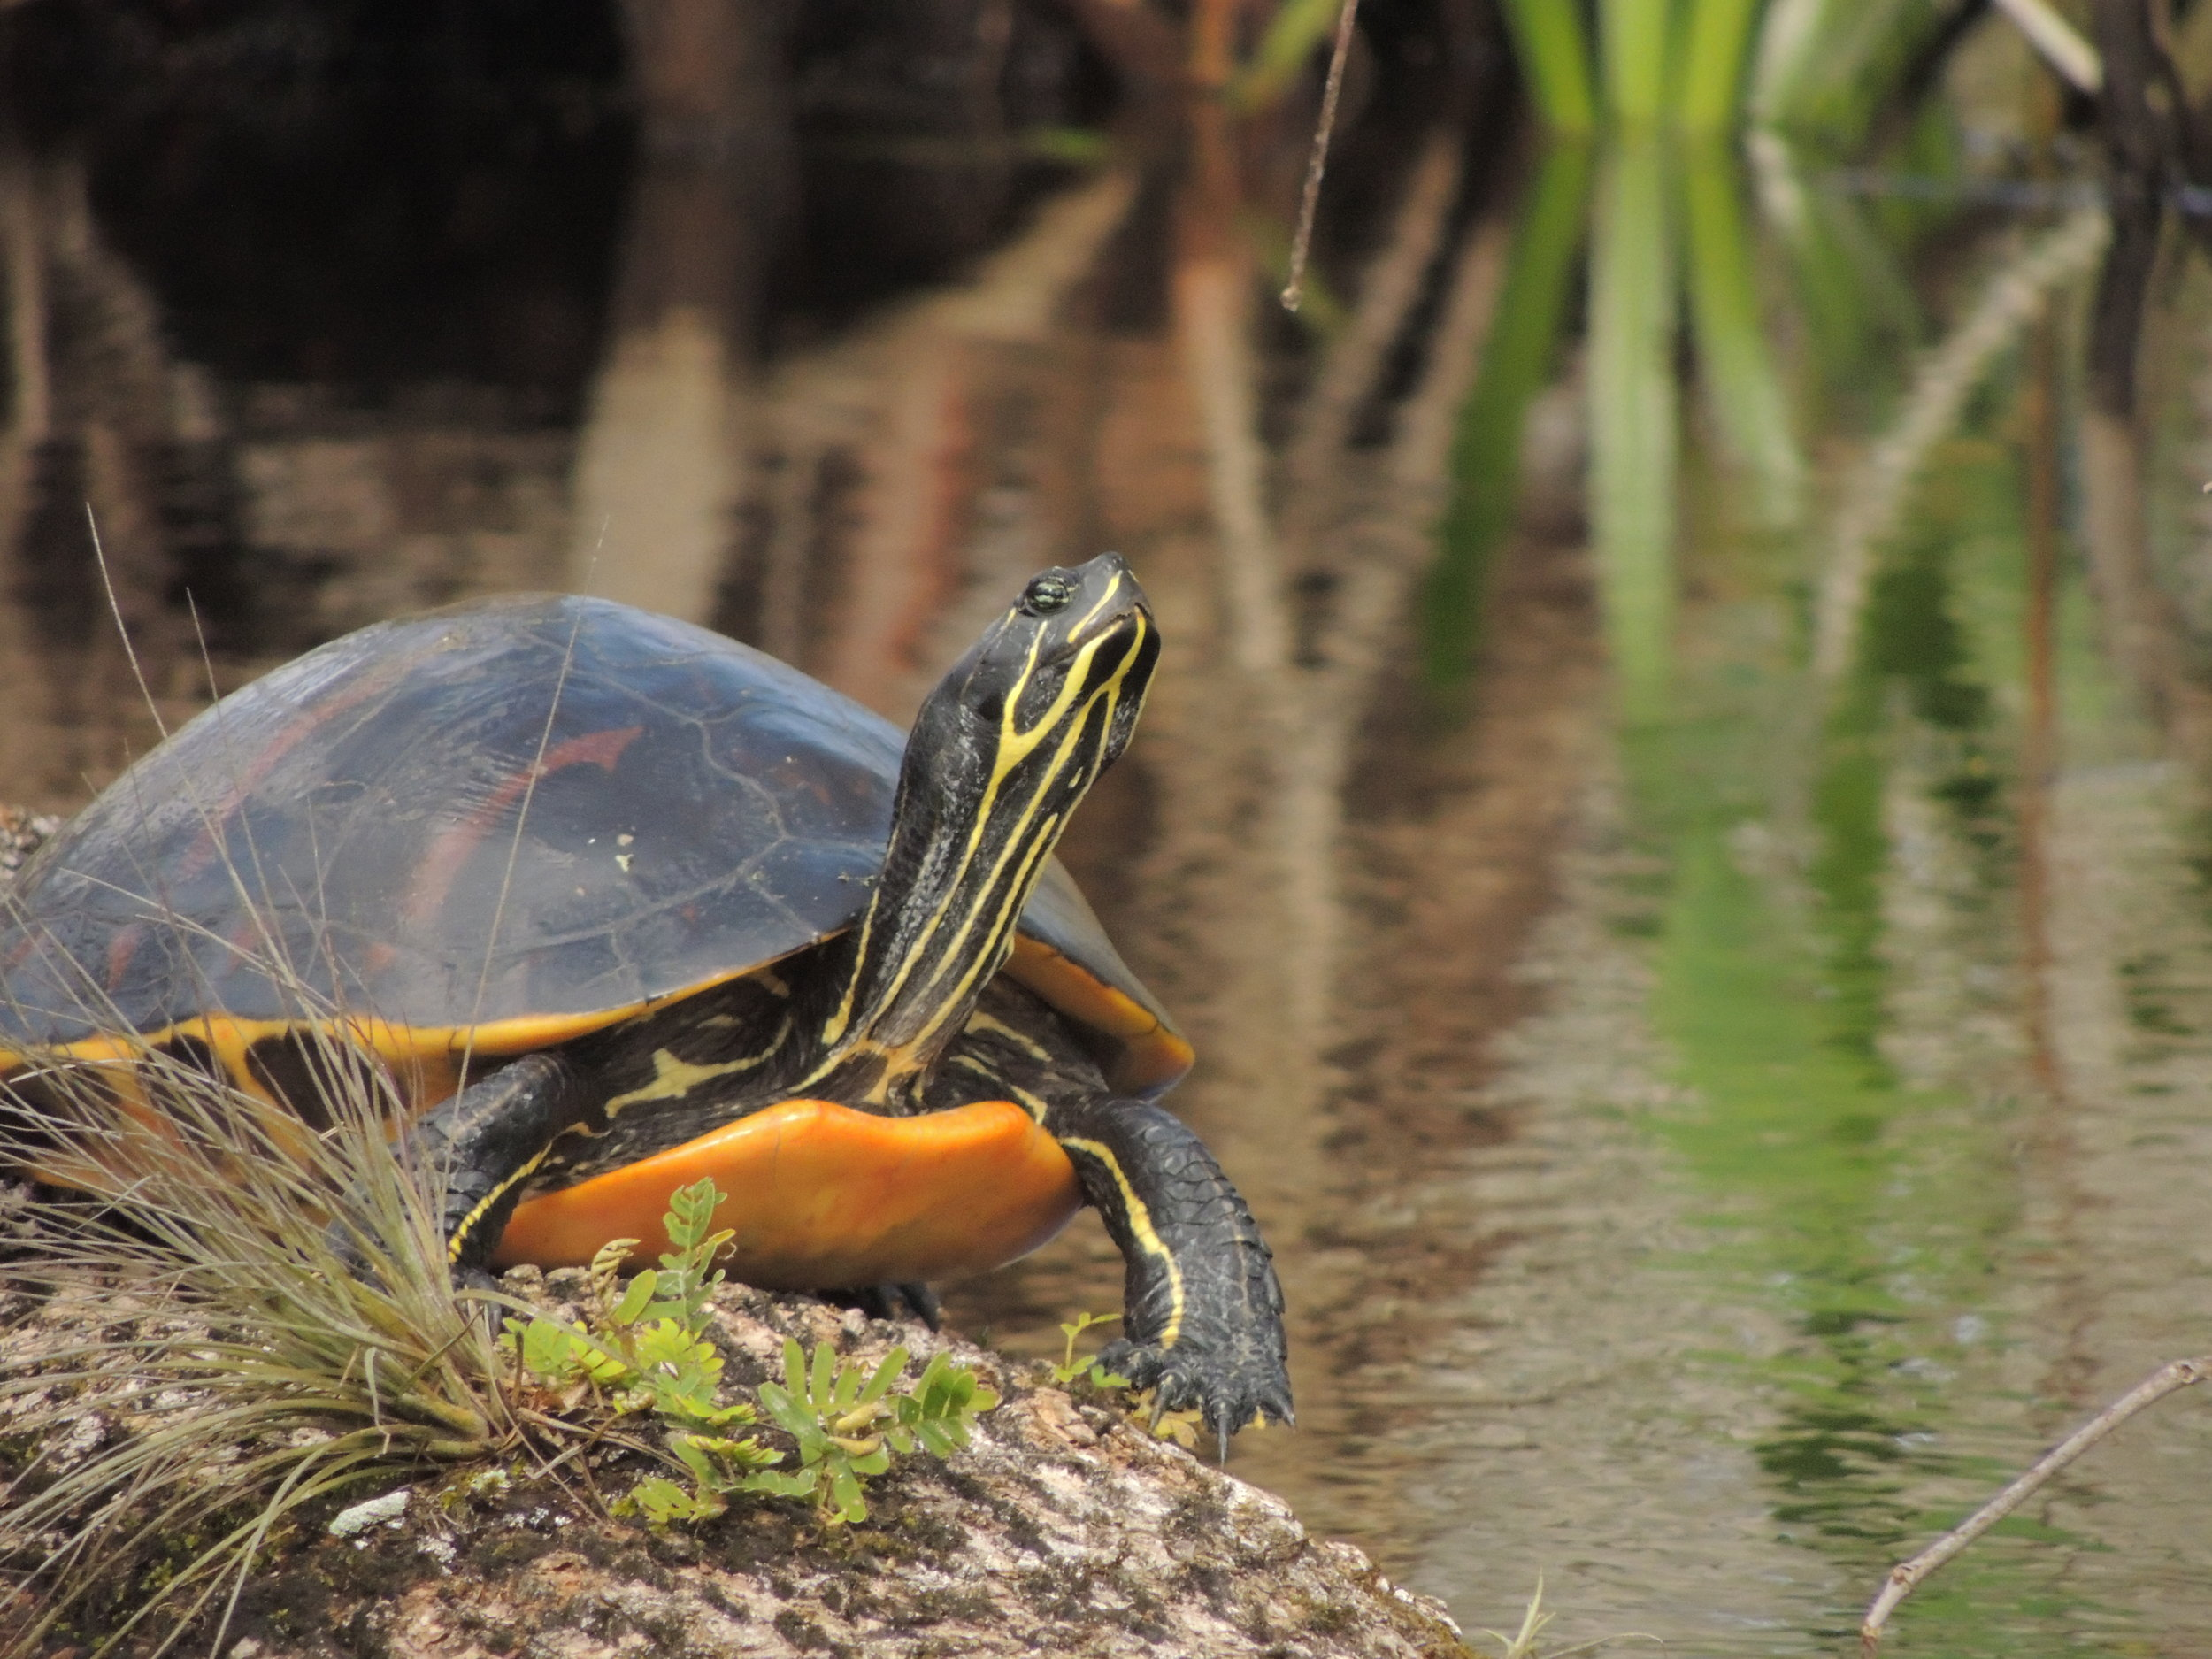 Florida red-bellied cooter, Pseudemys nelsoni , enjoying the view of Lake Apopka